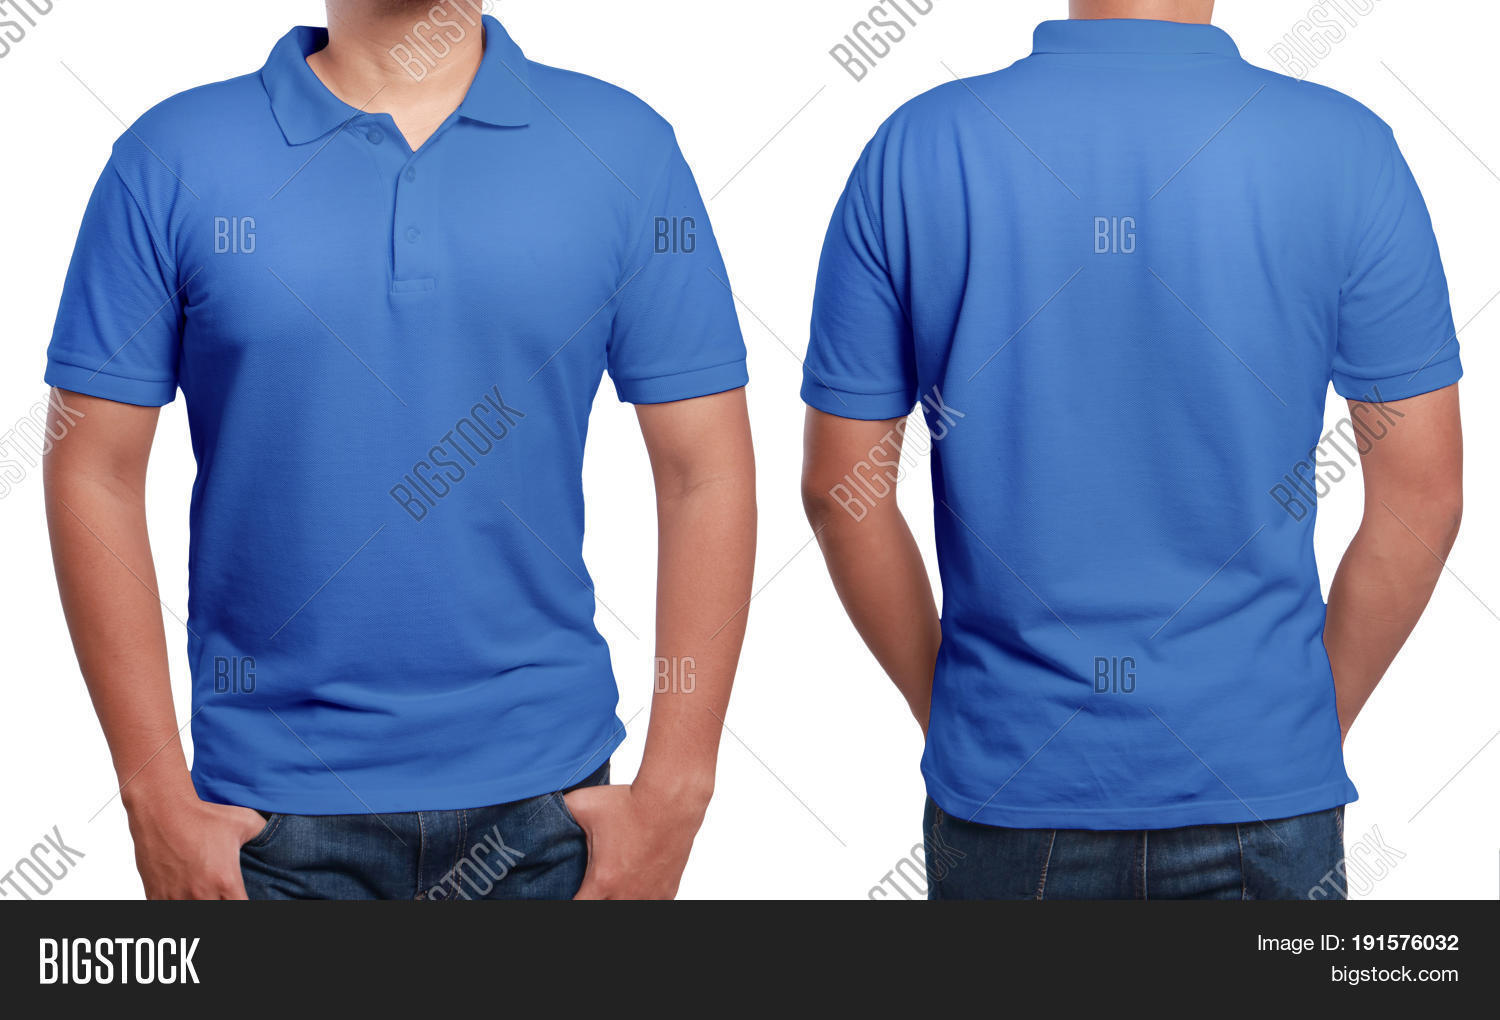 Blue polo t shirt mock image photo free trial bigstock for T shirt mockup front and back